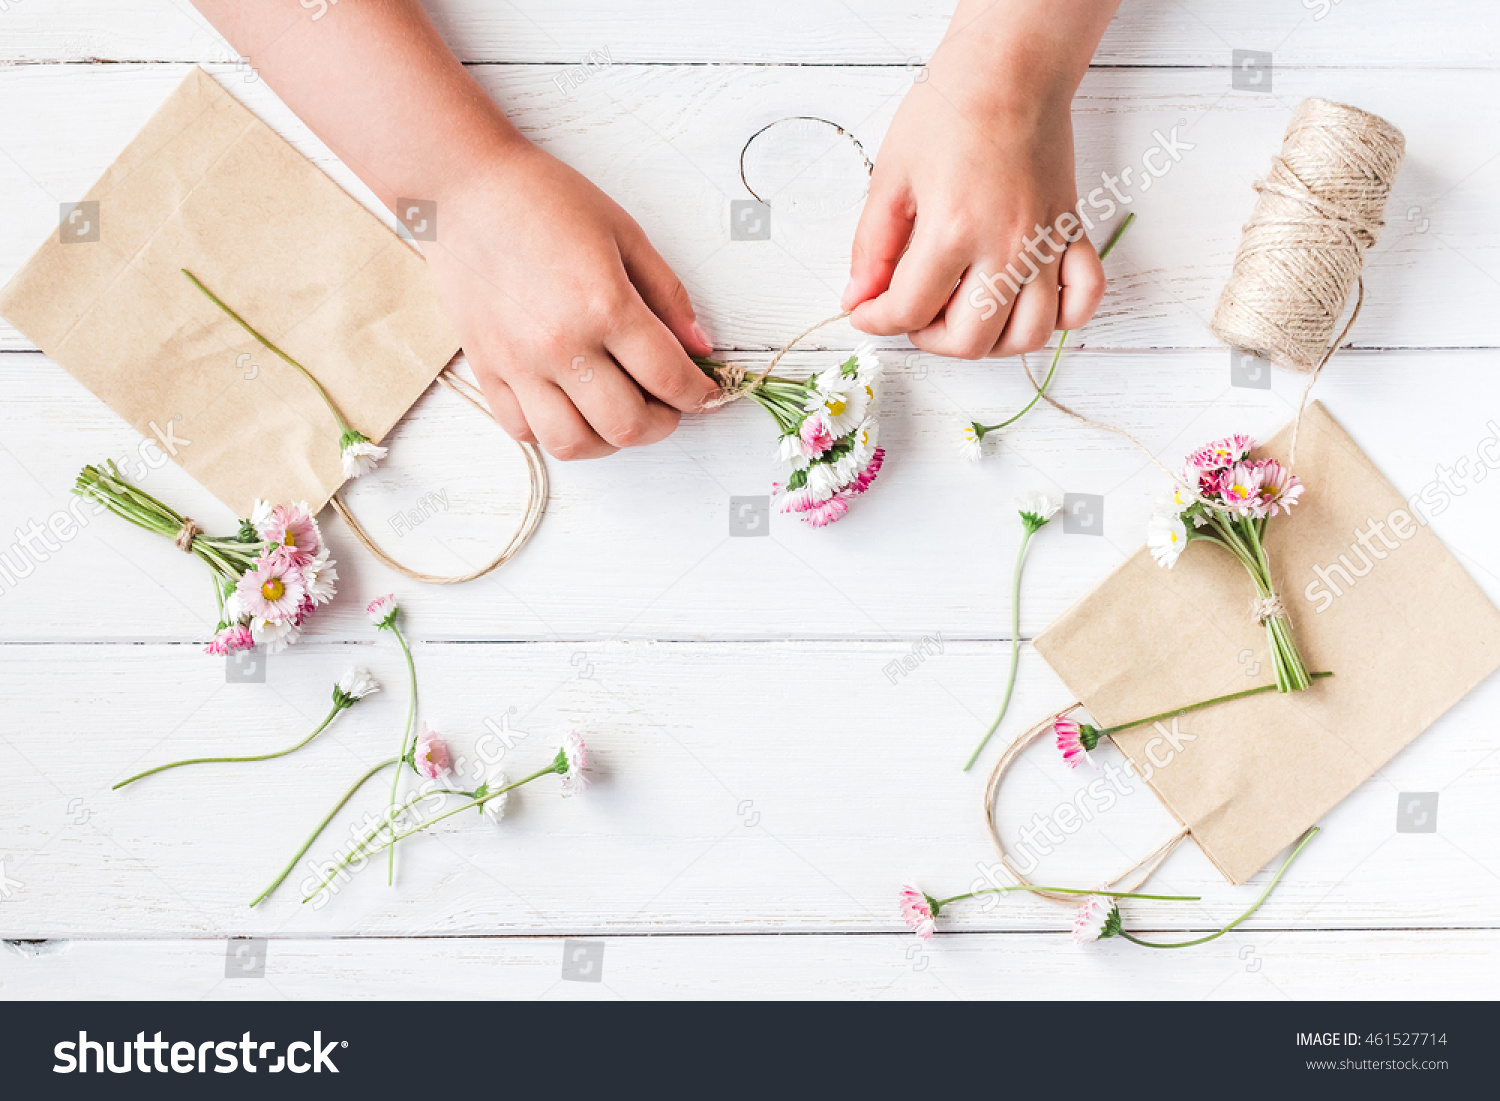 Workspace Small Bouquets Daisy Flowers Paper Stock Photo Edit Now